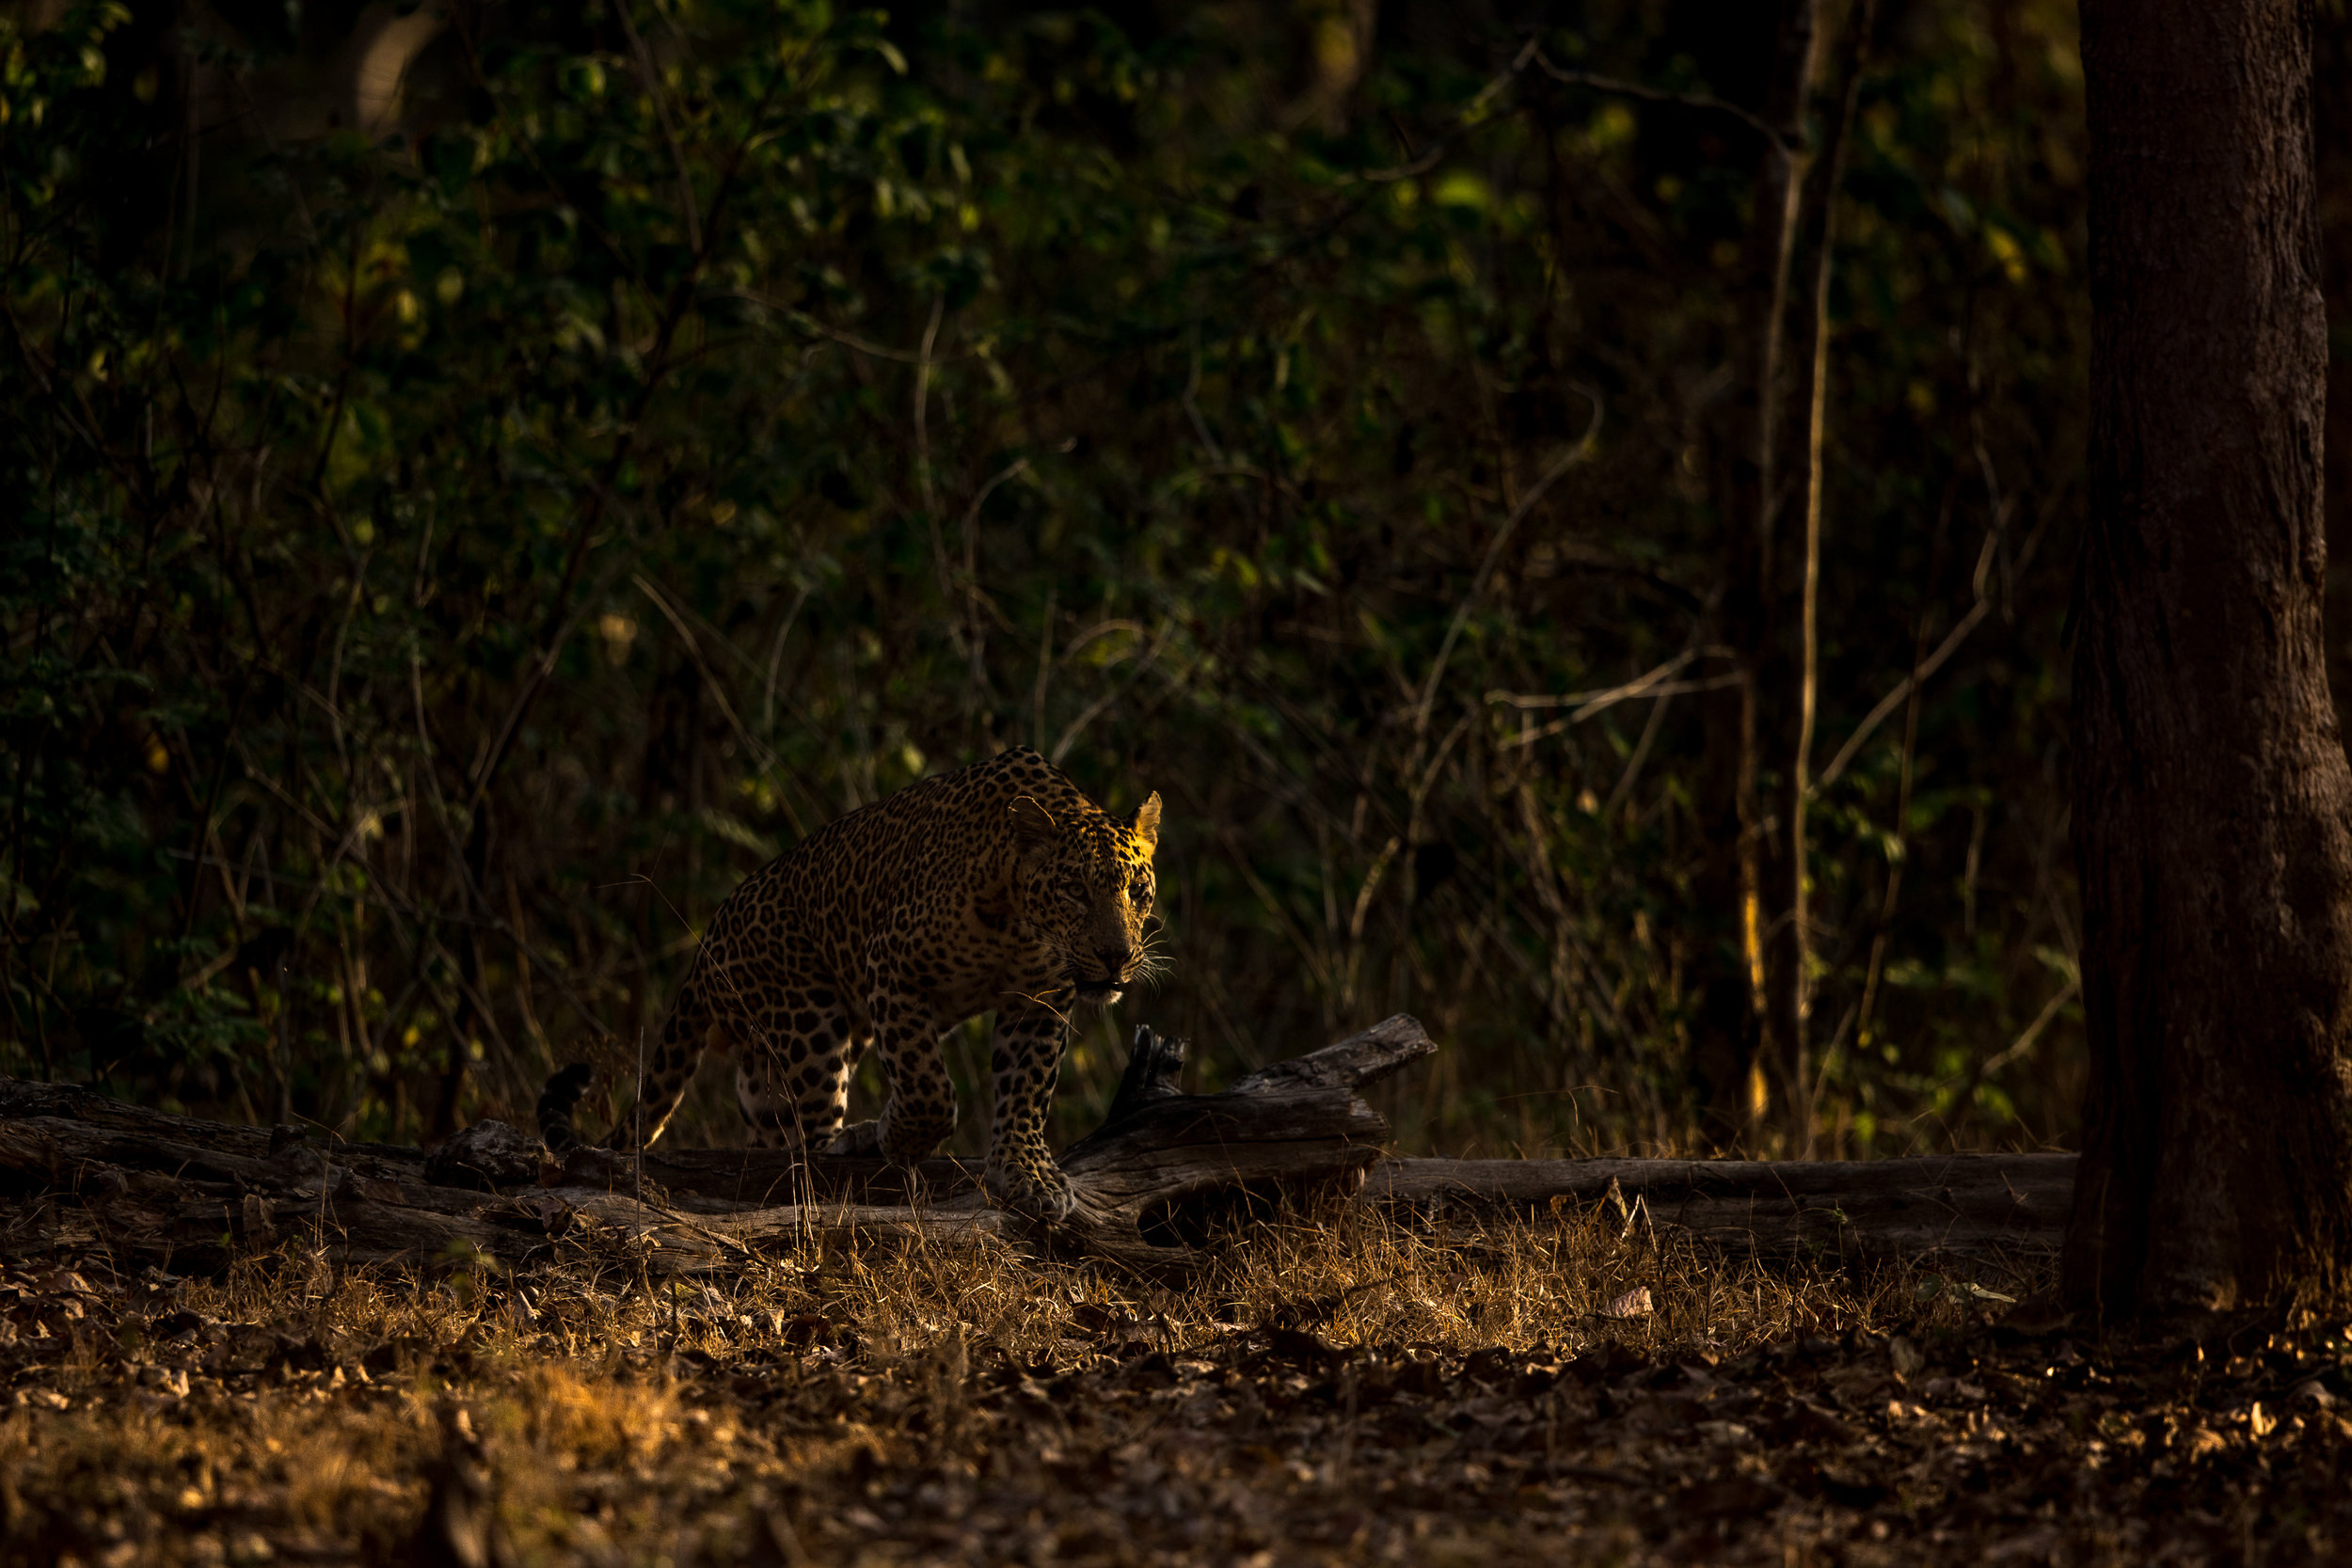 The leopard emerged from the shaded cover to harsh morning light. I dropped the exposure and made a dramtic scene.